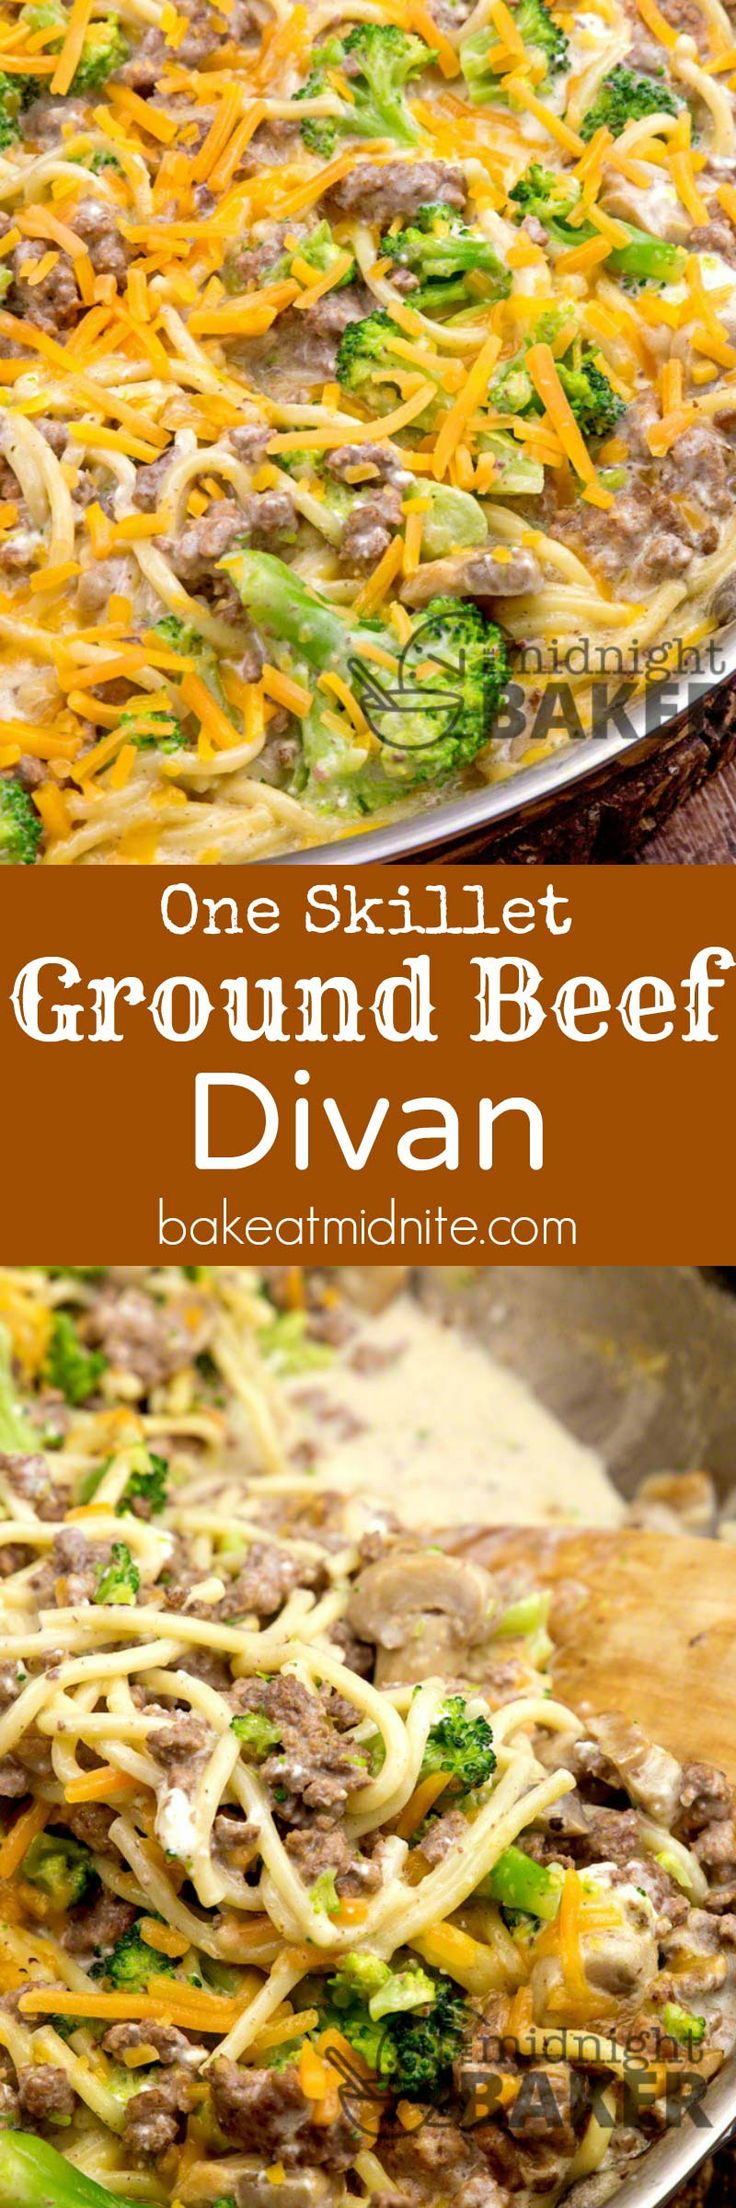 Inexpensive ground beef, one skillet and 30 minutes is all it takes for this great divan family dinner